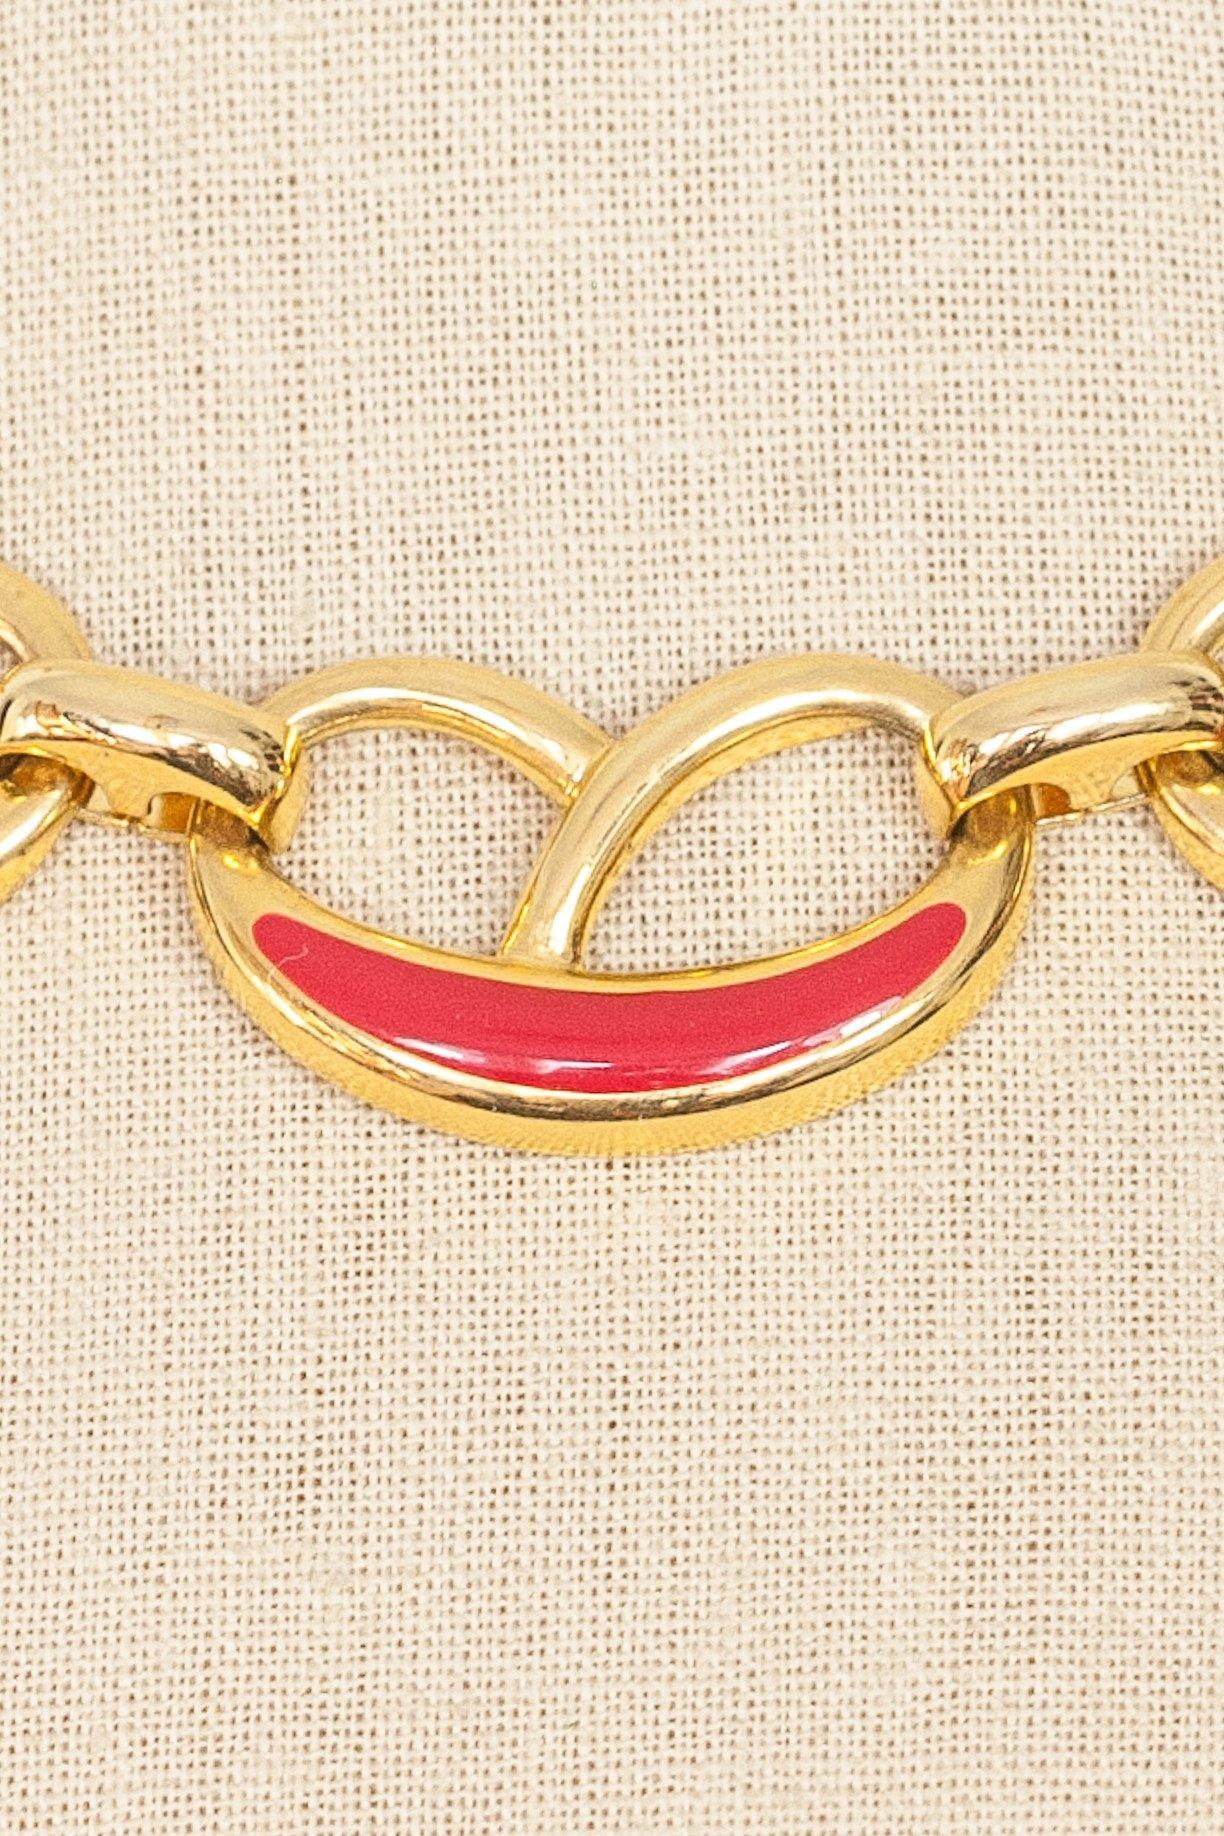 80's__Vintage__Red Statement Necklace